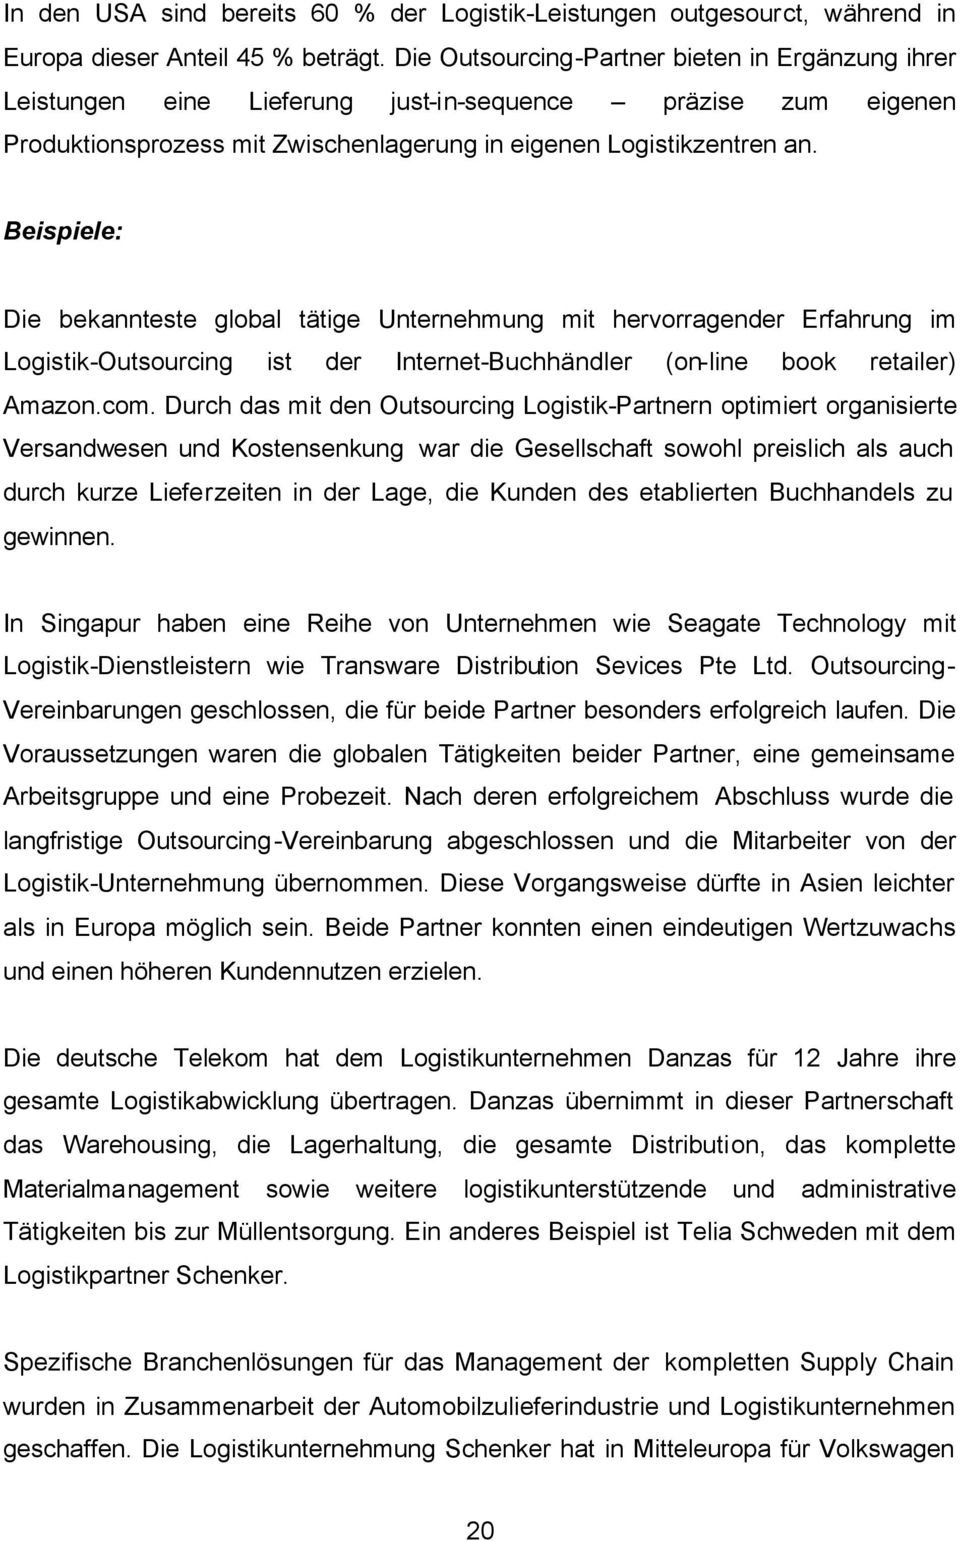 Beispiele: Die bekannteste global tätige Unternehmung mit hervorragender Erfahrung im Logistik-Outsourcing ist der Internet-Buchhändler (on-line book retailer) Amazon.com.